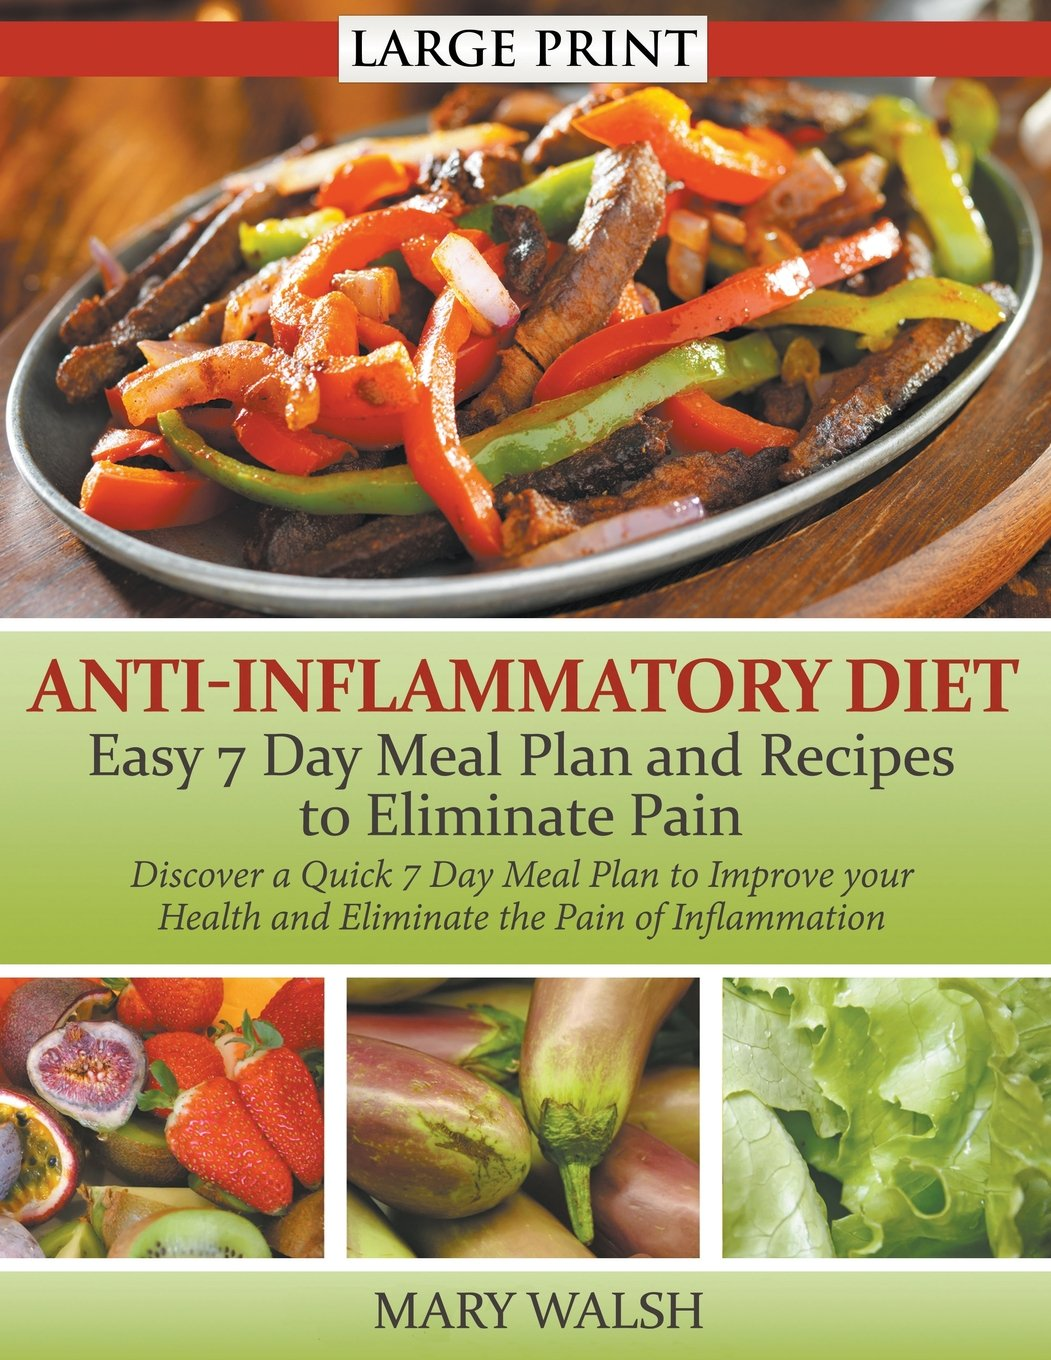 Anti-Inflammatory Diet: Easy 7 Day Meal Plan and Recipes to Eliminate Pain (LARGE PRINT): Discover a Quick 7 Day Meal Plan to Improve your Health and Eliminate the Pain of Inflammation pdf epub